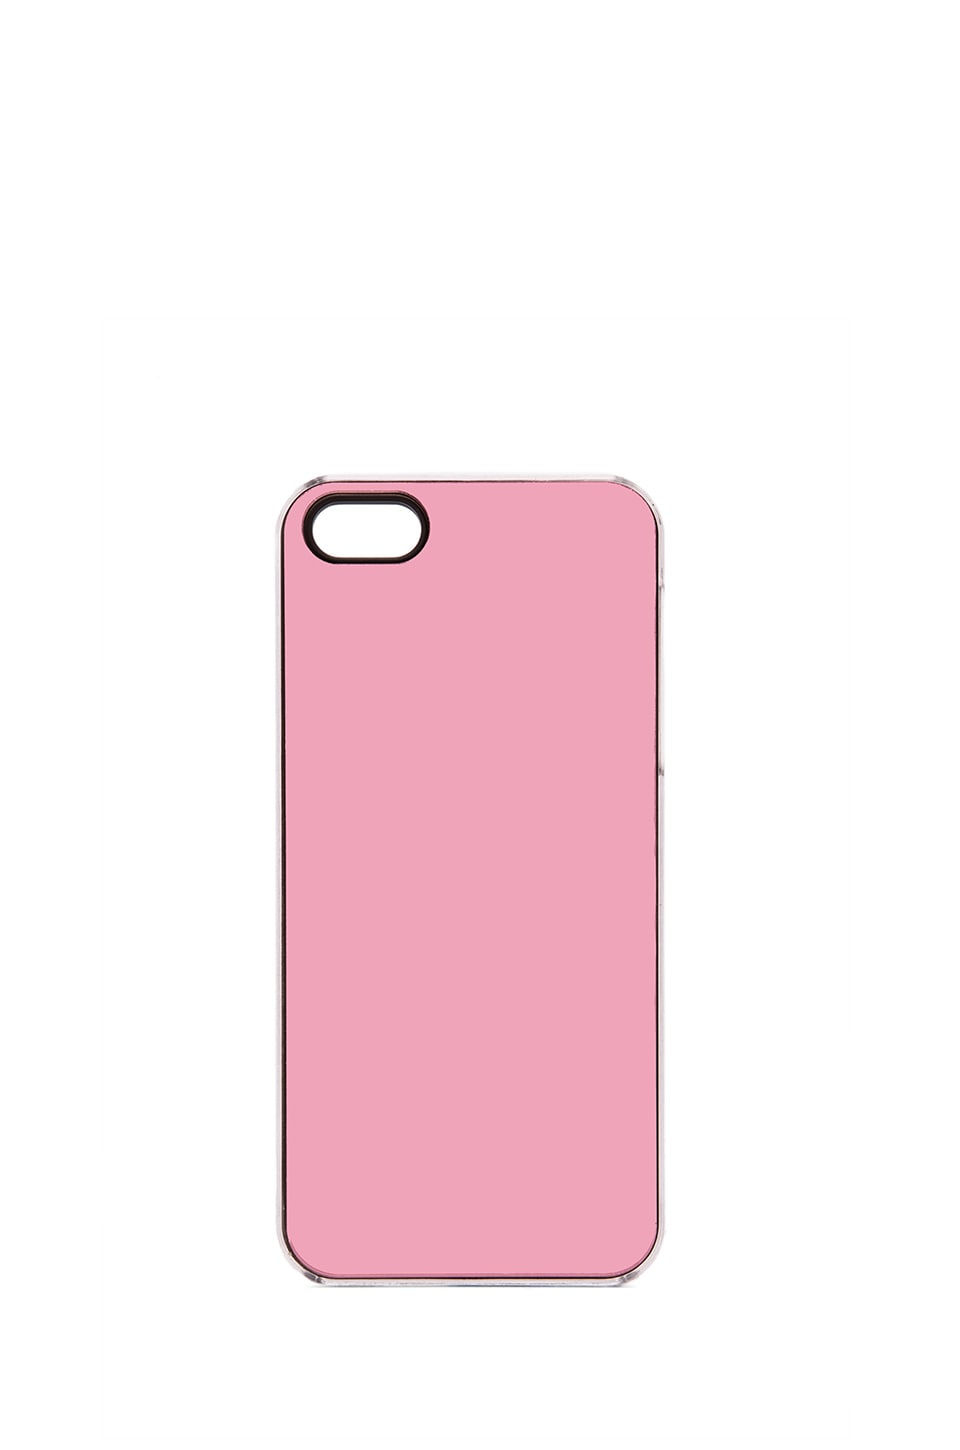 ZERO GRAVITY Mirror iPhone 5 Case in Pink